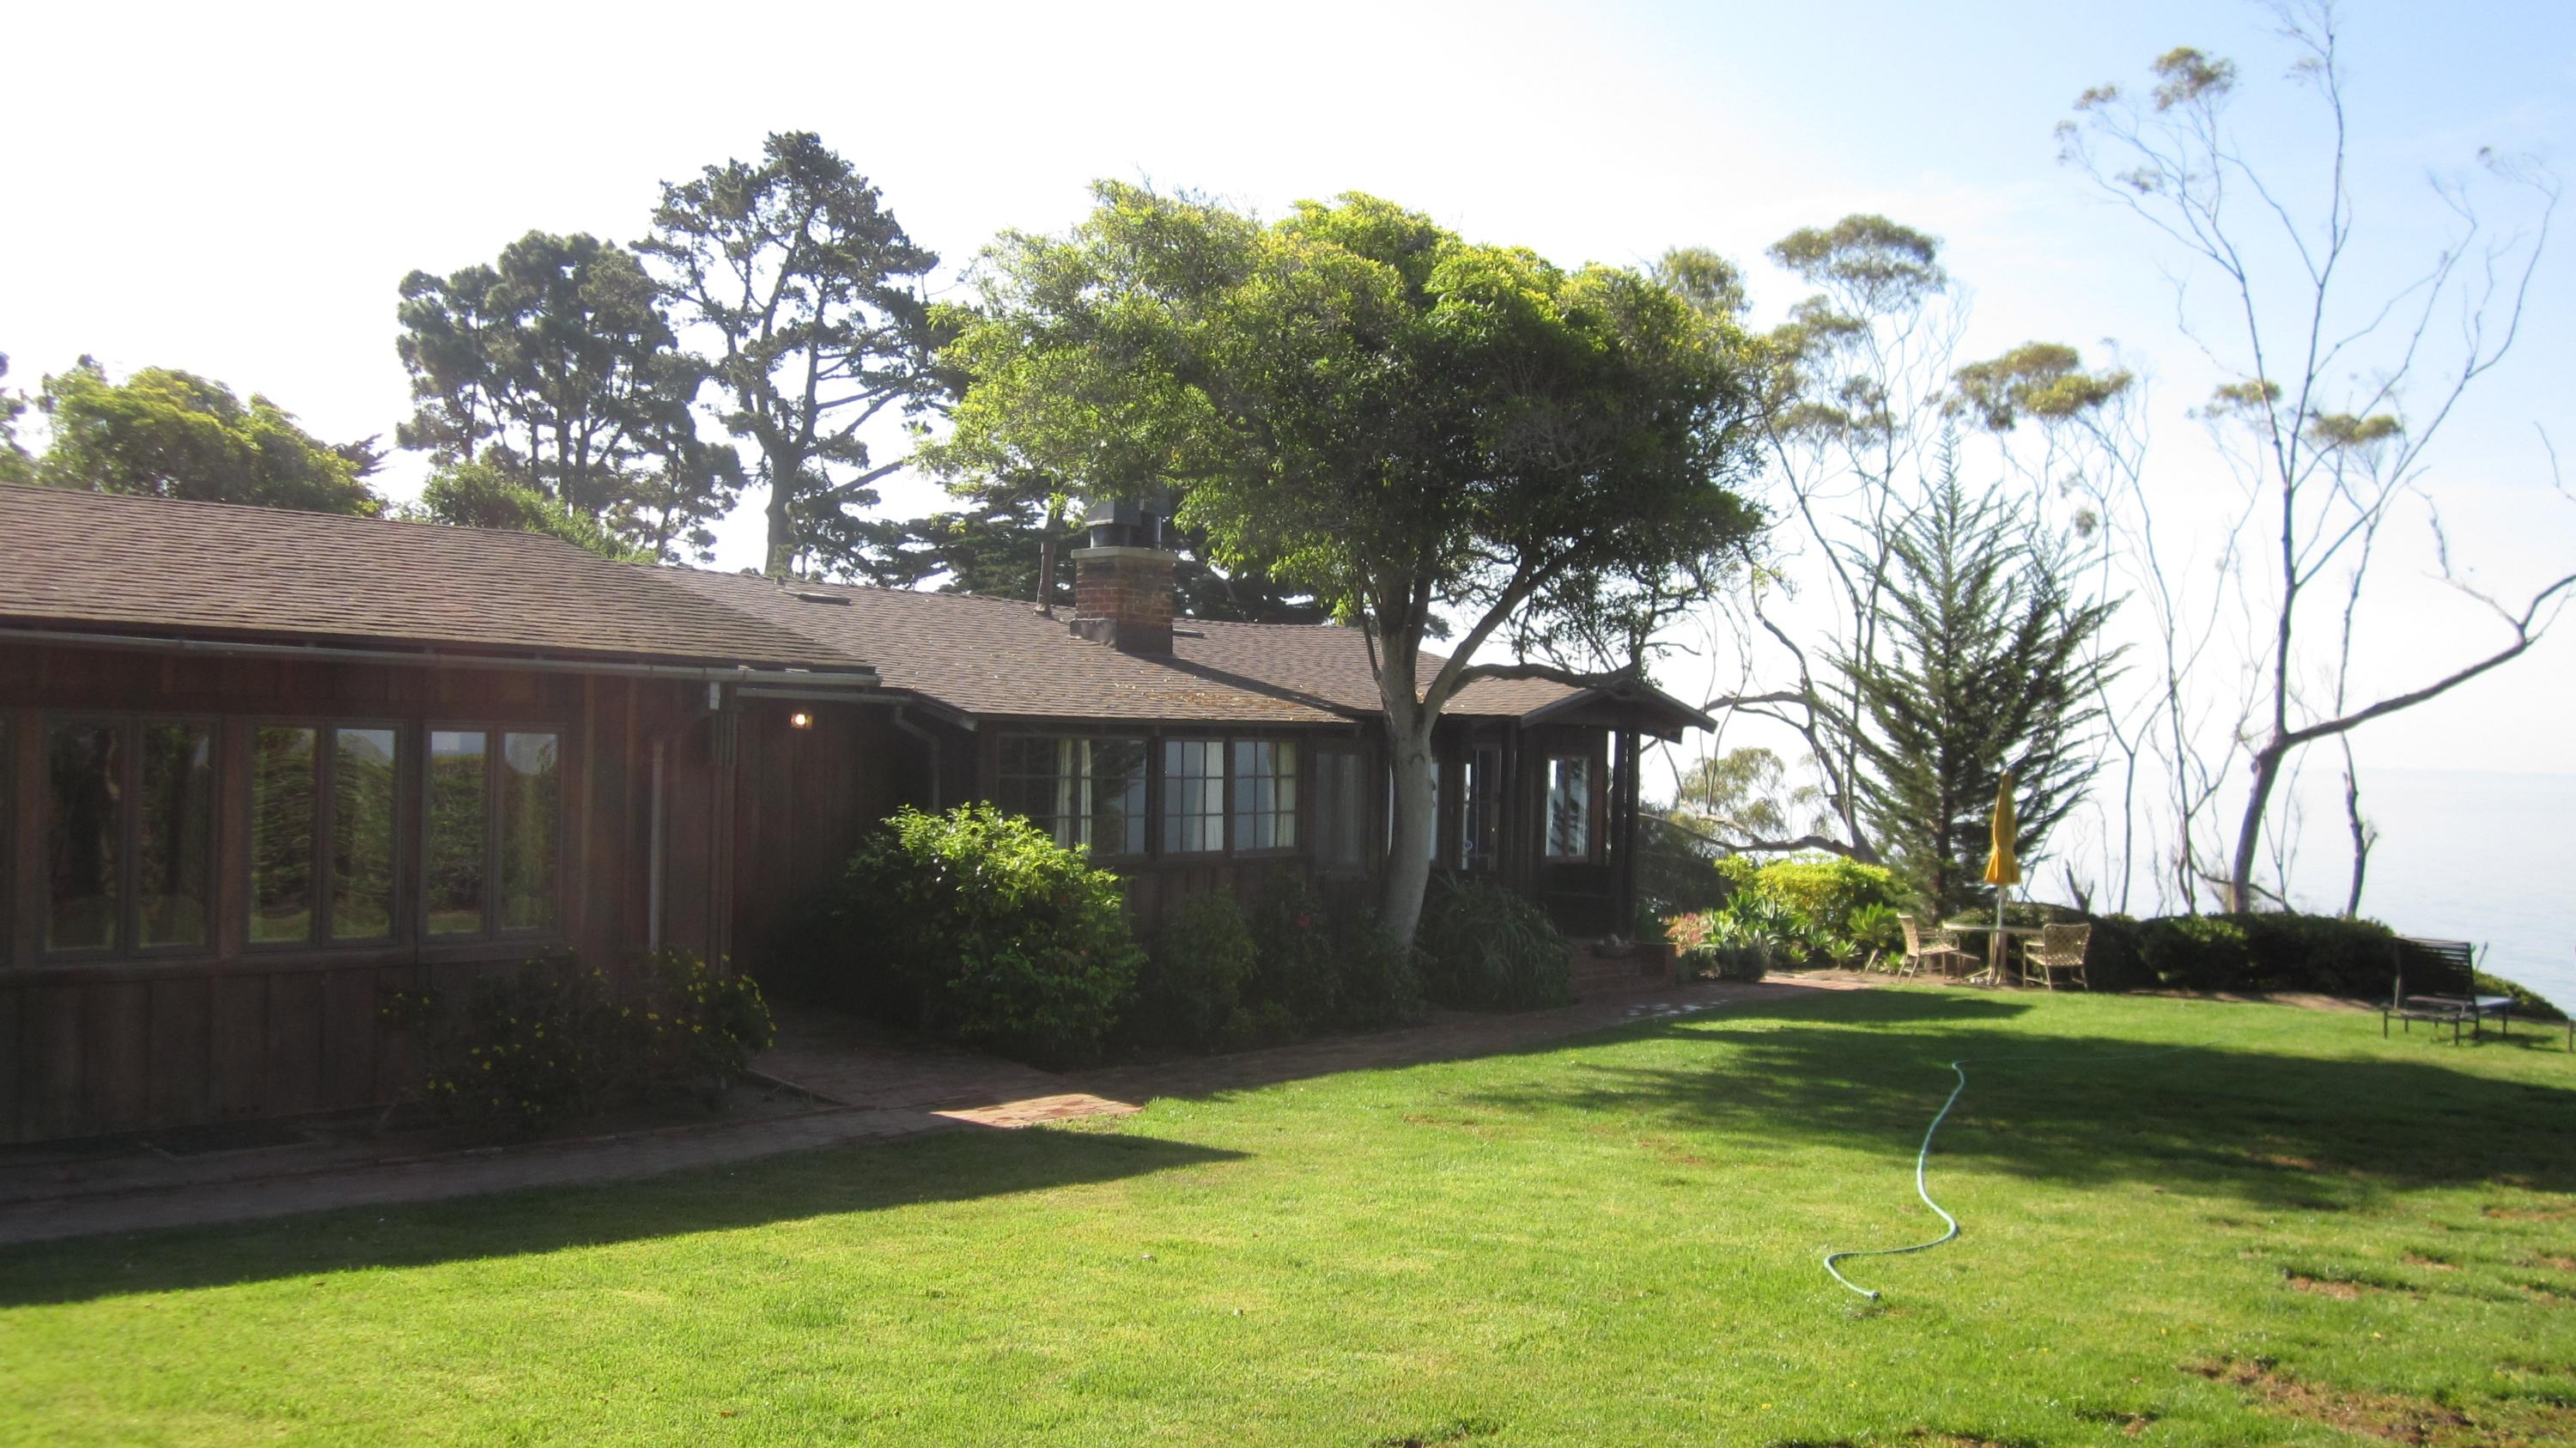 Property photo for 1 Mesa Ln Santa Barbara, California 93109 - 13-1443